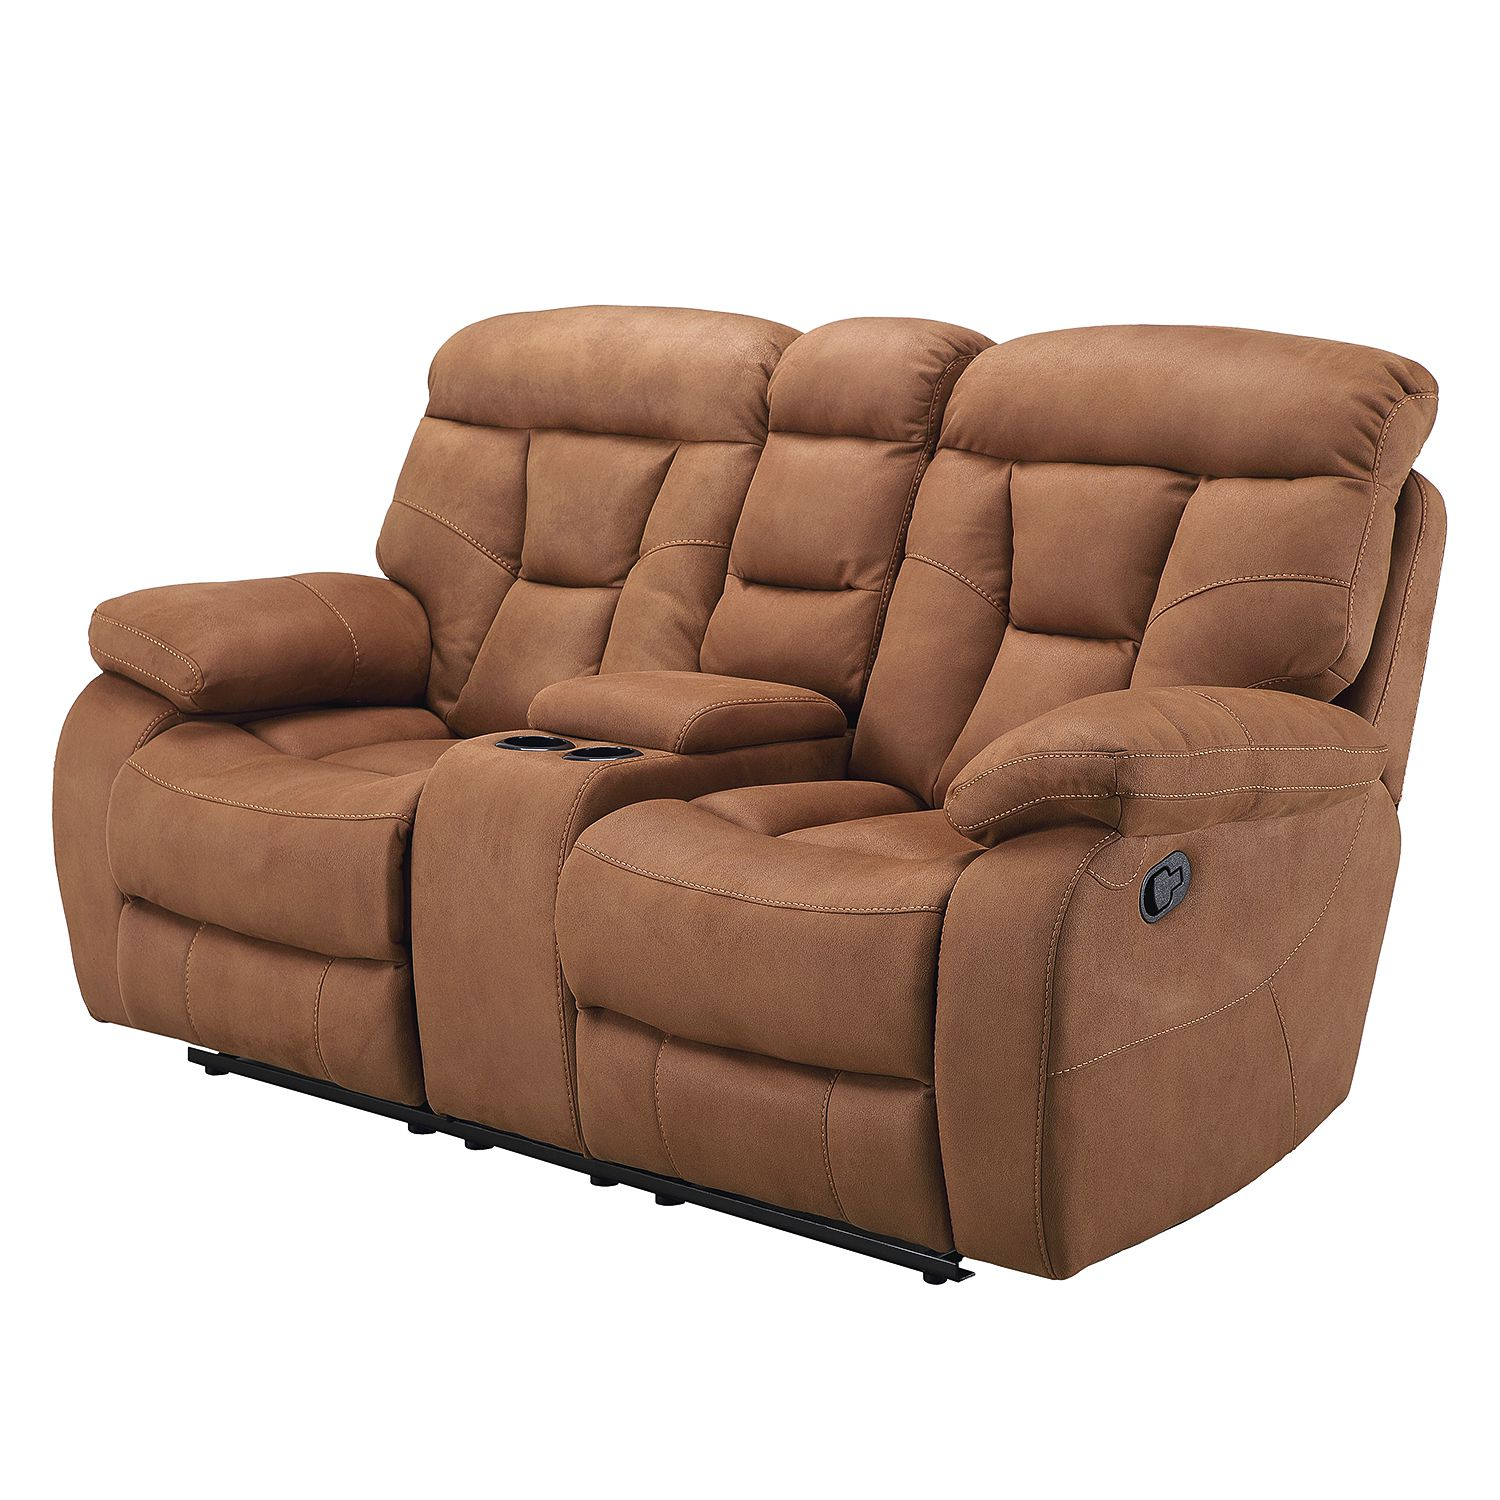 Fesselnde Couch Mit Relaxfunktion Beste Wahl Sofa Hankey (2-sitzer Relaxfunktion) - Microfaser -